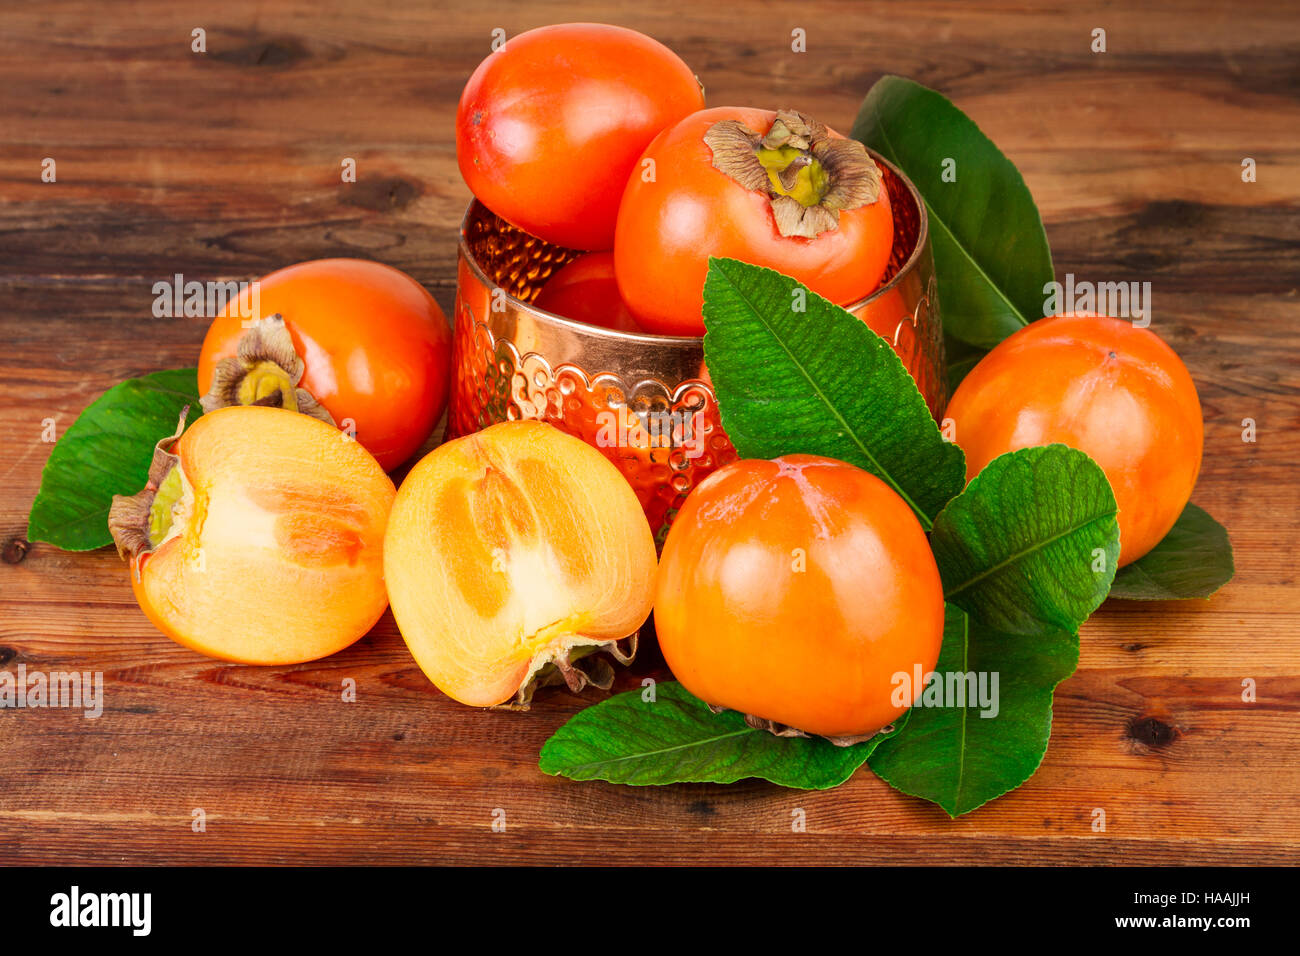 Persimmons with vintage copper vase on old wood. Oriental still life. - Stock Image